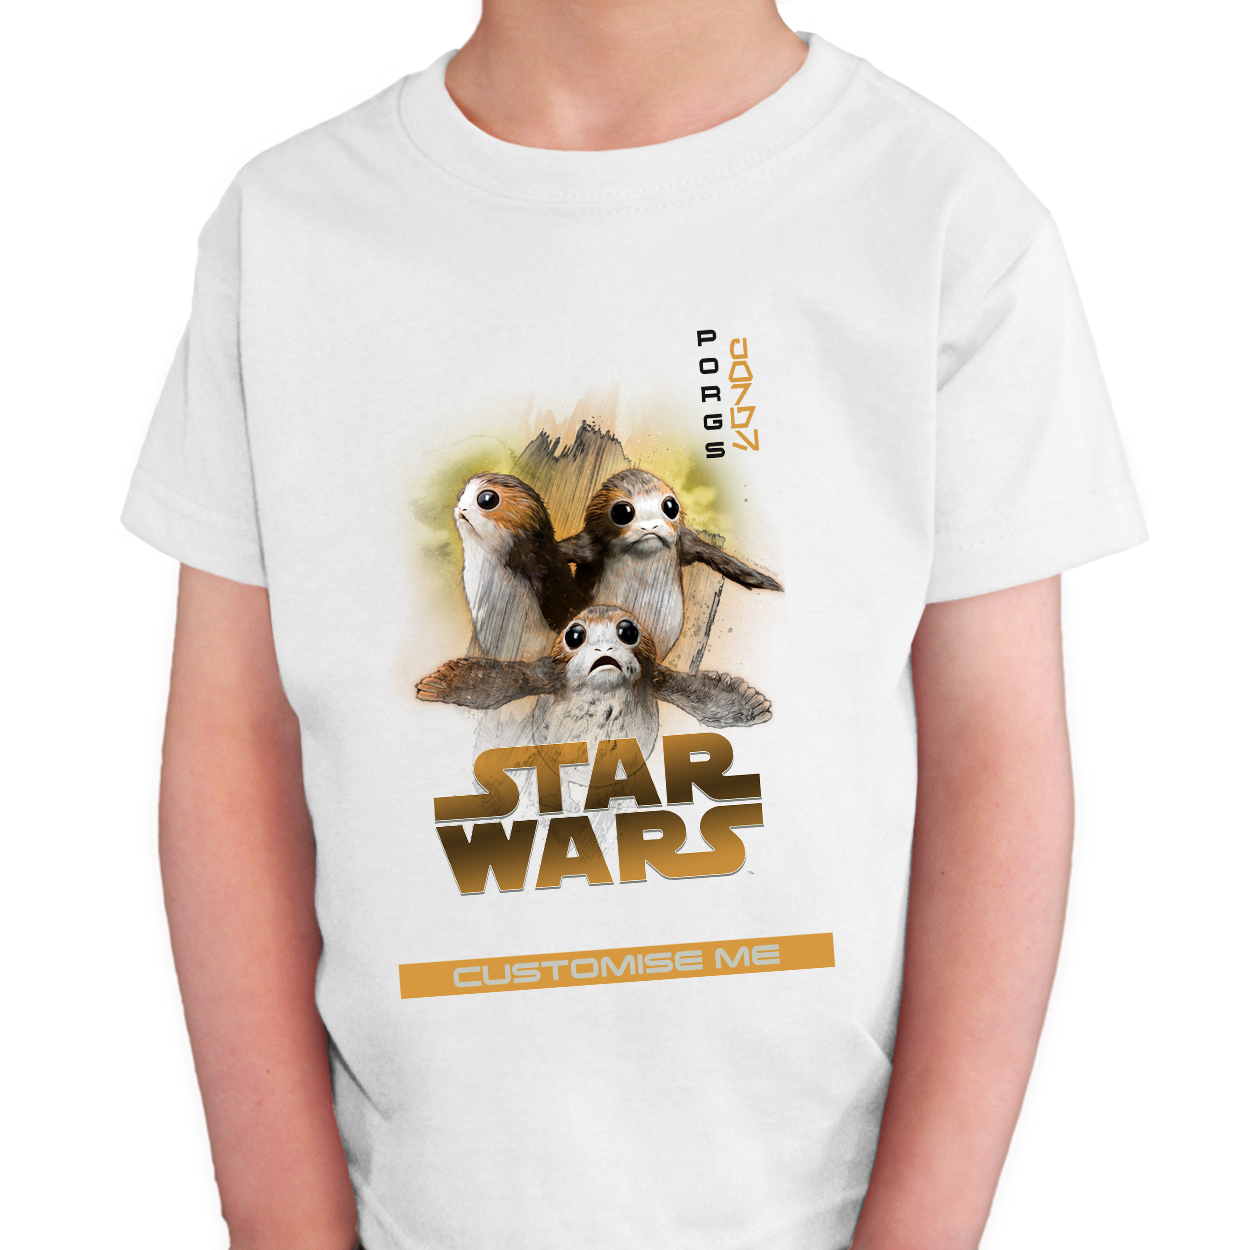 Star Wars Porg Last Jedi Spray Paint Kids T-shirt